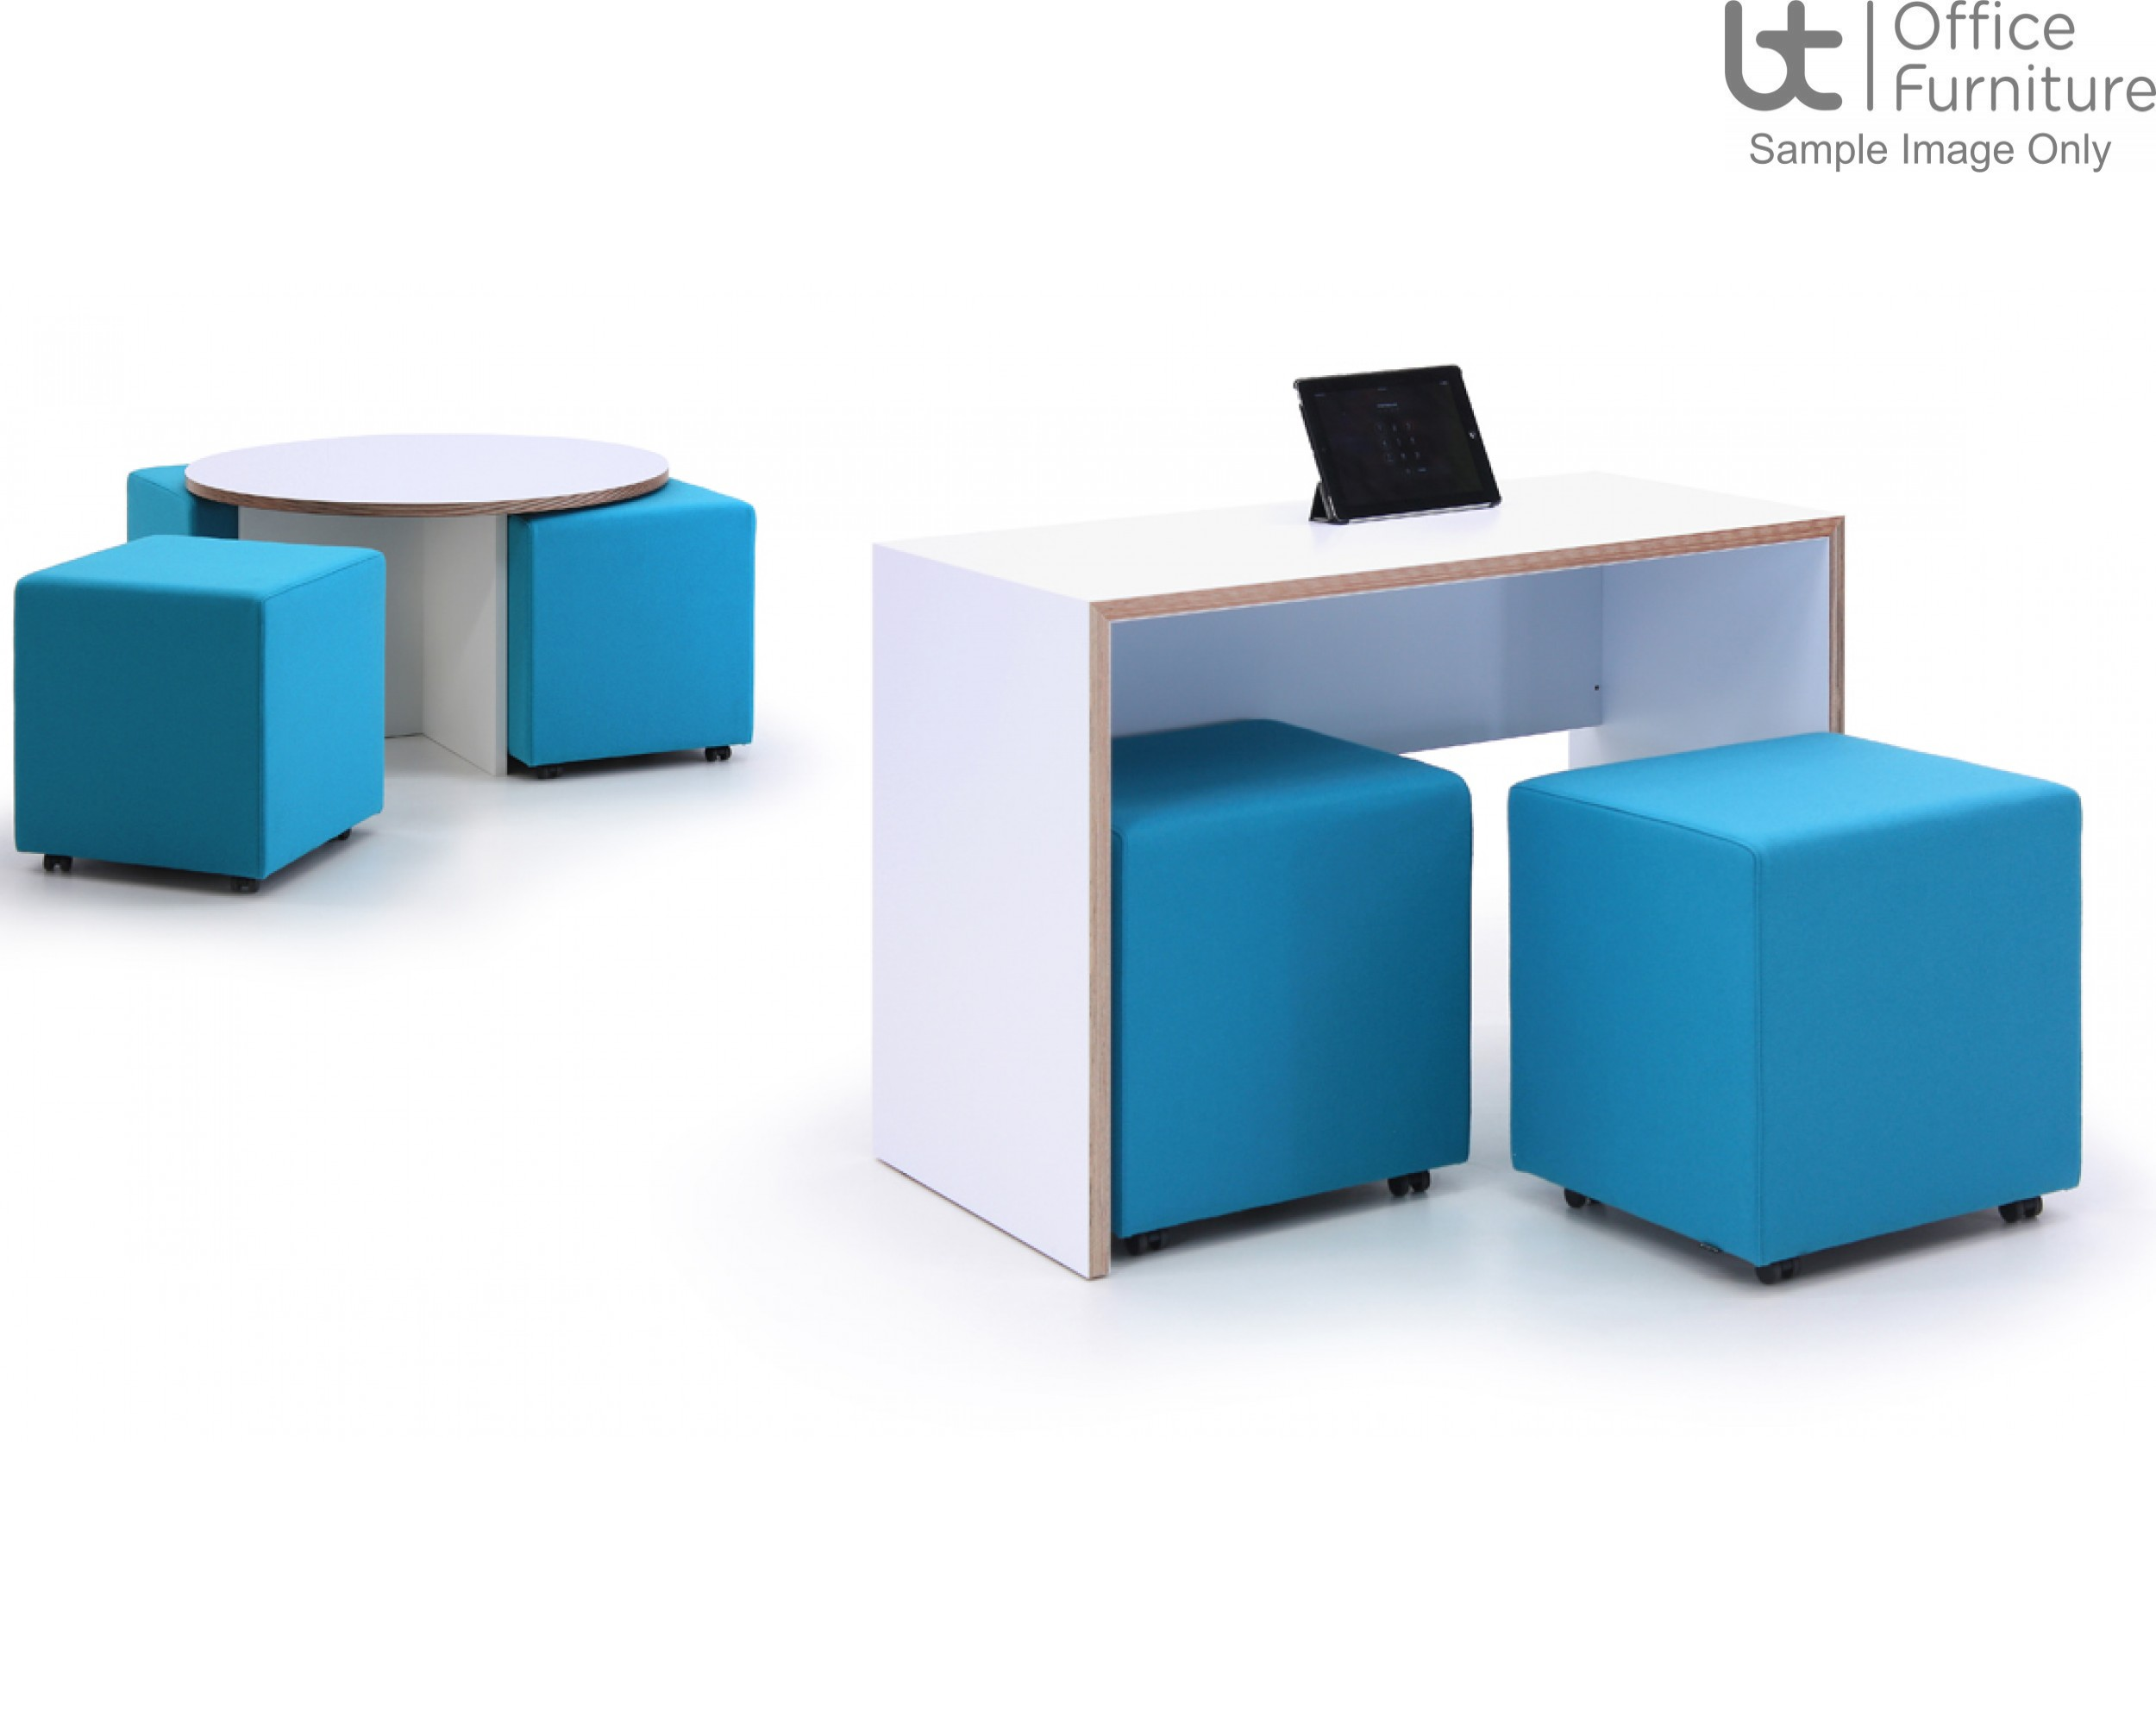 Box-It - Occasional Work Table